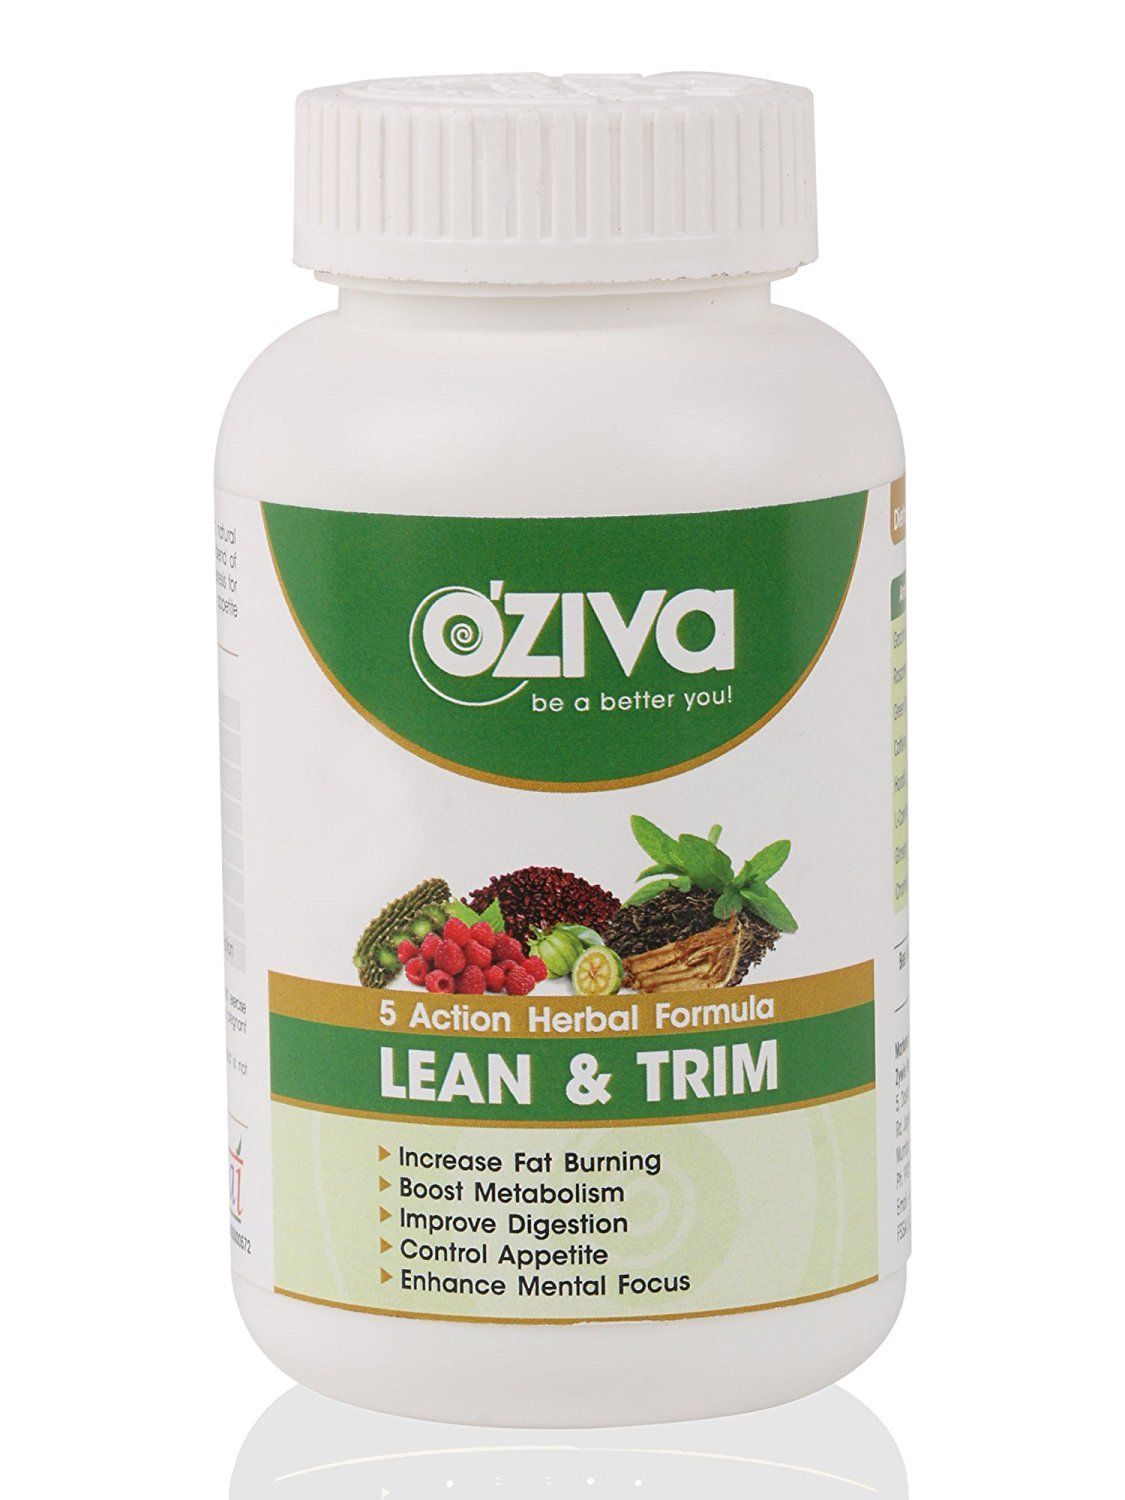 Oziva Lean Trim Natural Fat Burner With Power Of 5 Herbs